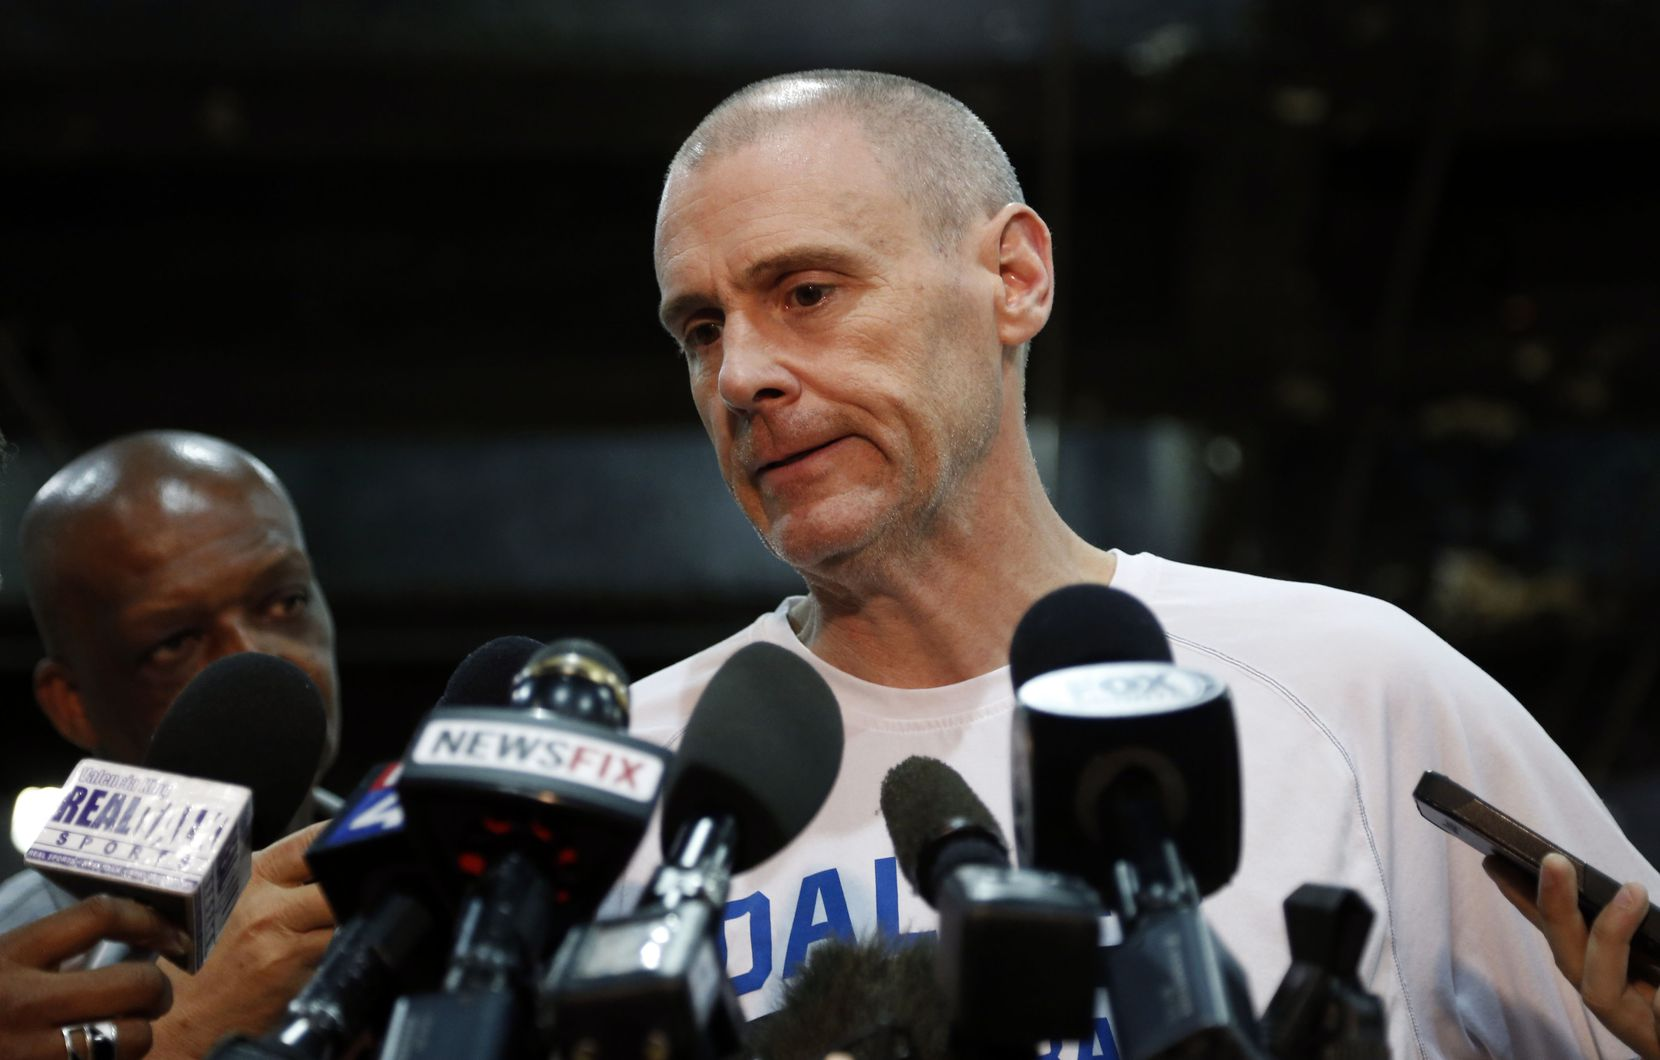 Dallas Mavericks head coach Rick Carlisle talks to the media the day after losing to the San Antonio Spurs in game 7 of the first round of the NBA Playoffs at American Airlines Center in Dallas, Texas on May 5, 2014. (Vernon Bryant/The Dallas Morning News)